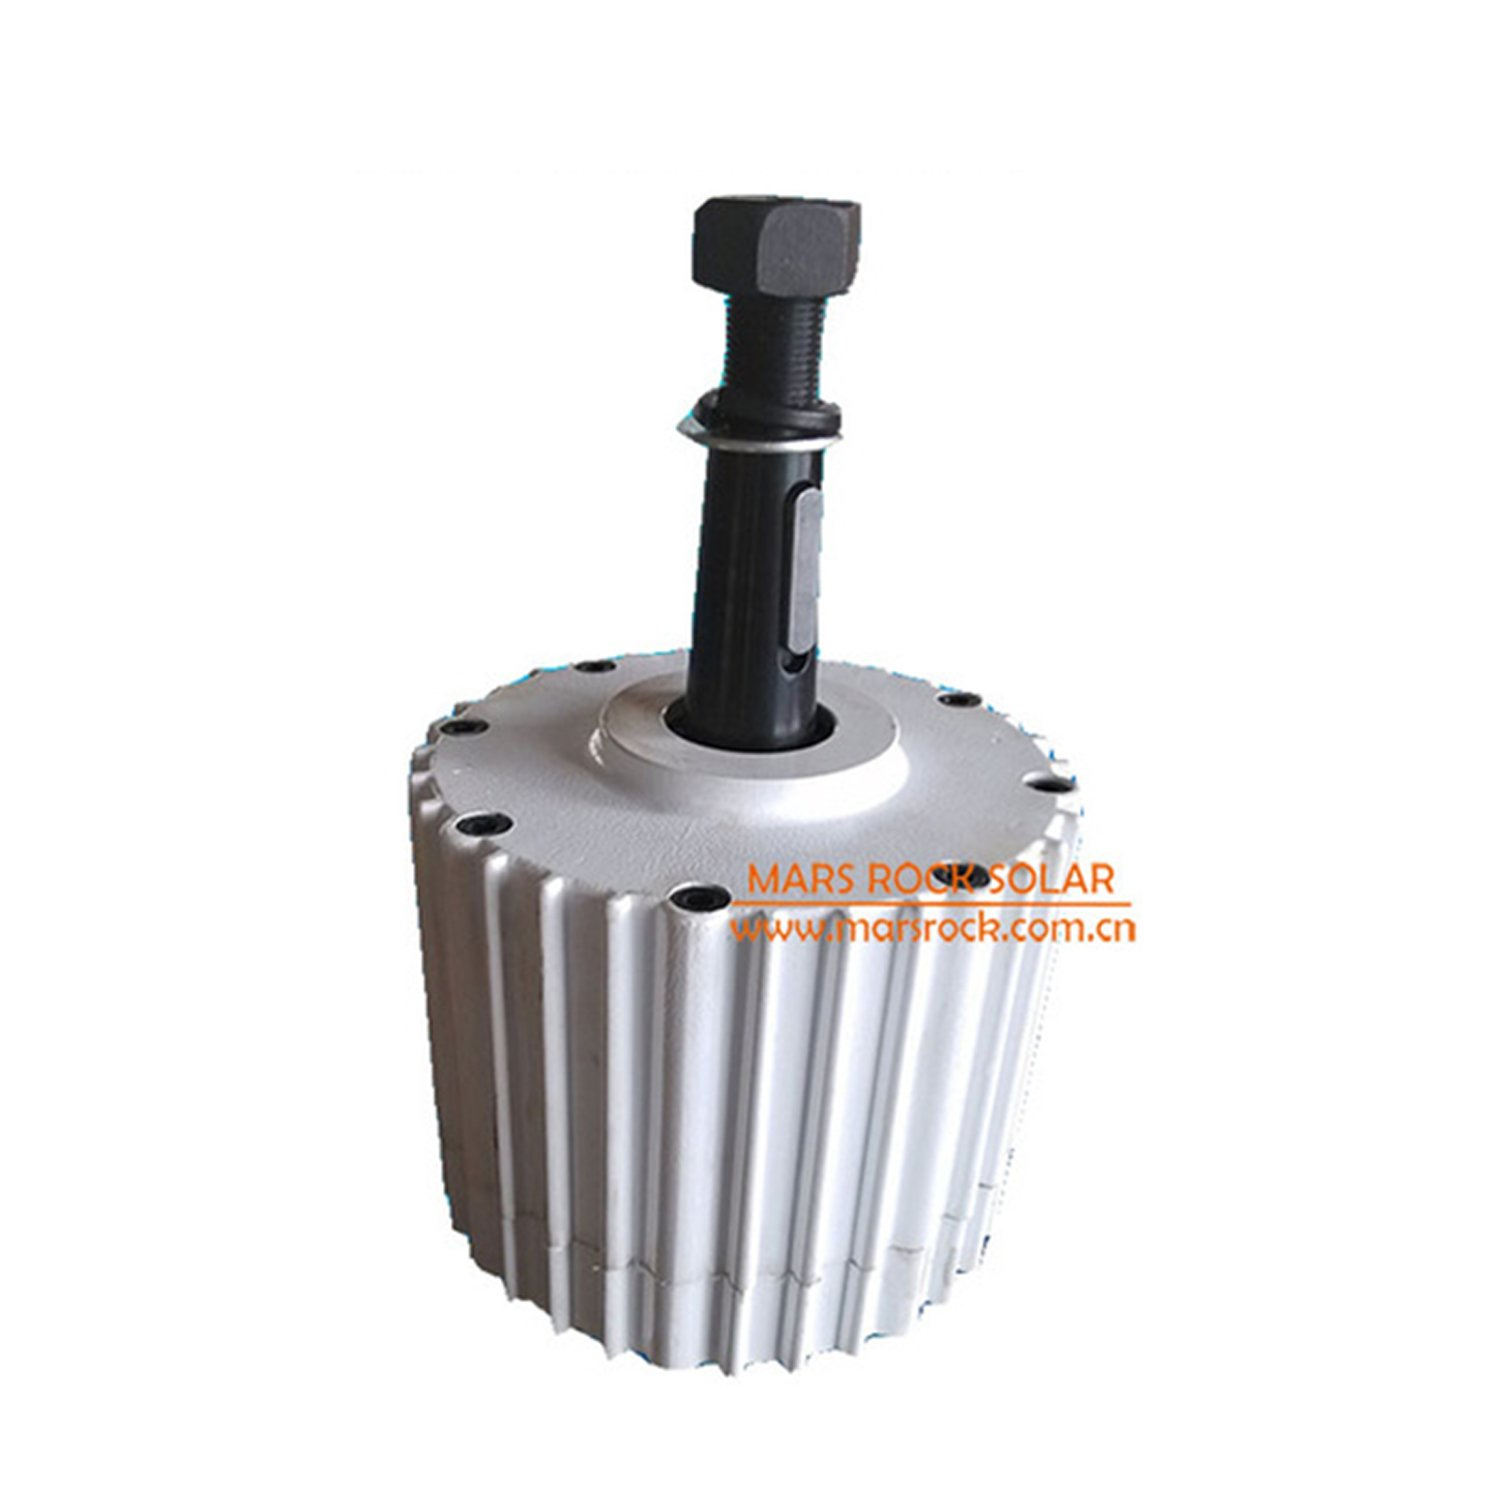 2000W 24/48/96V Three-phase Permanent Magnet Synchronous AC generator for Wind Turbine Use Generate Electricity(48V)